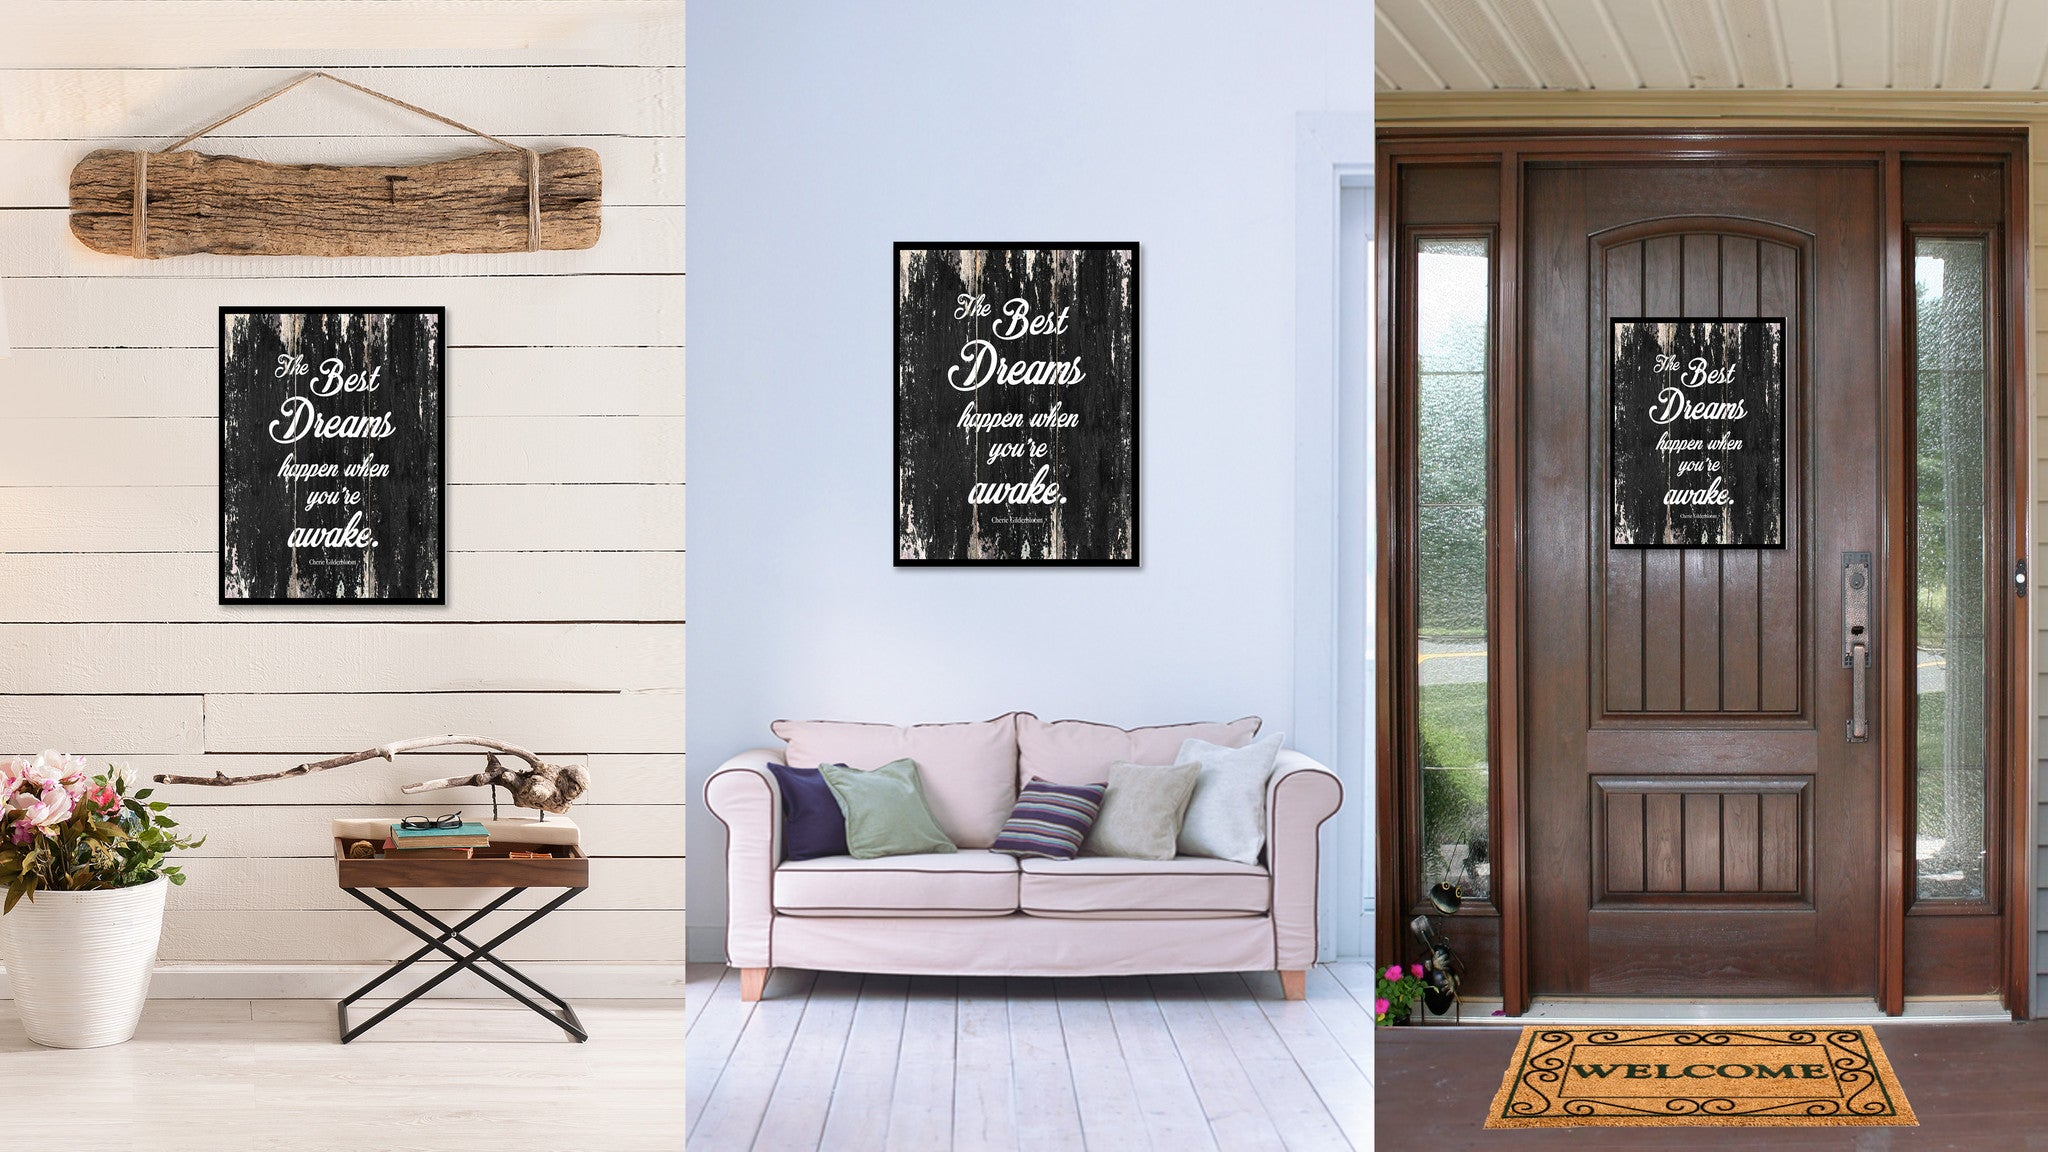 The best dreams happen when you're awake Quote Saying Canvas Print with Picture Frame Home Decor Wall Art